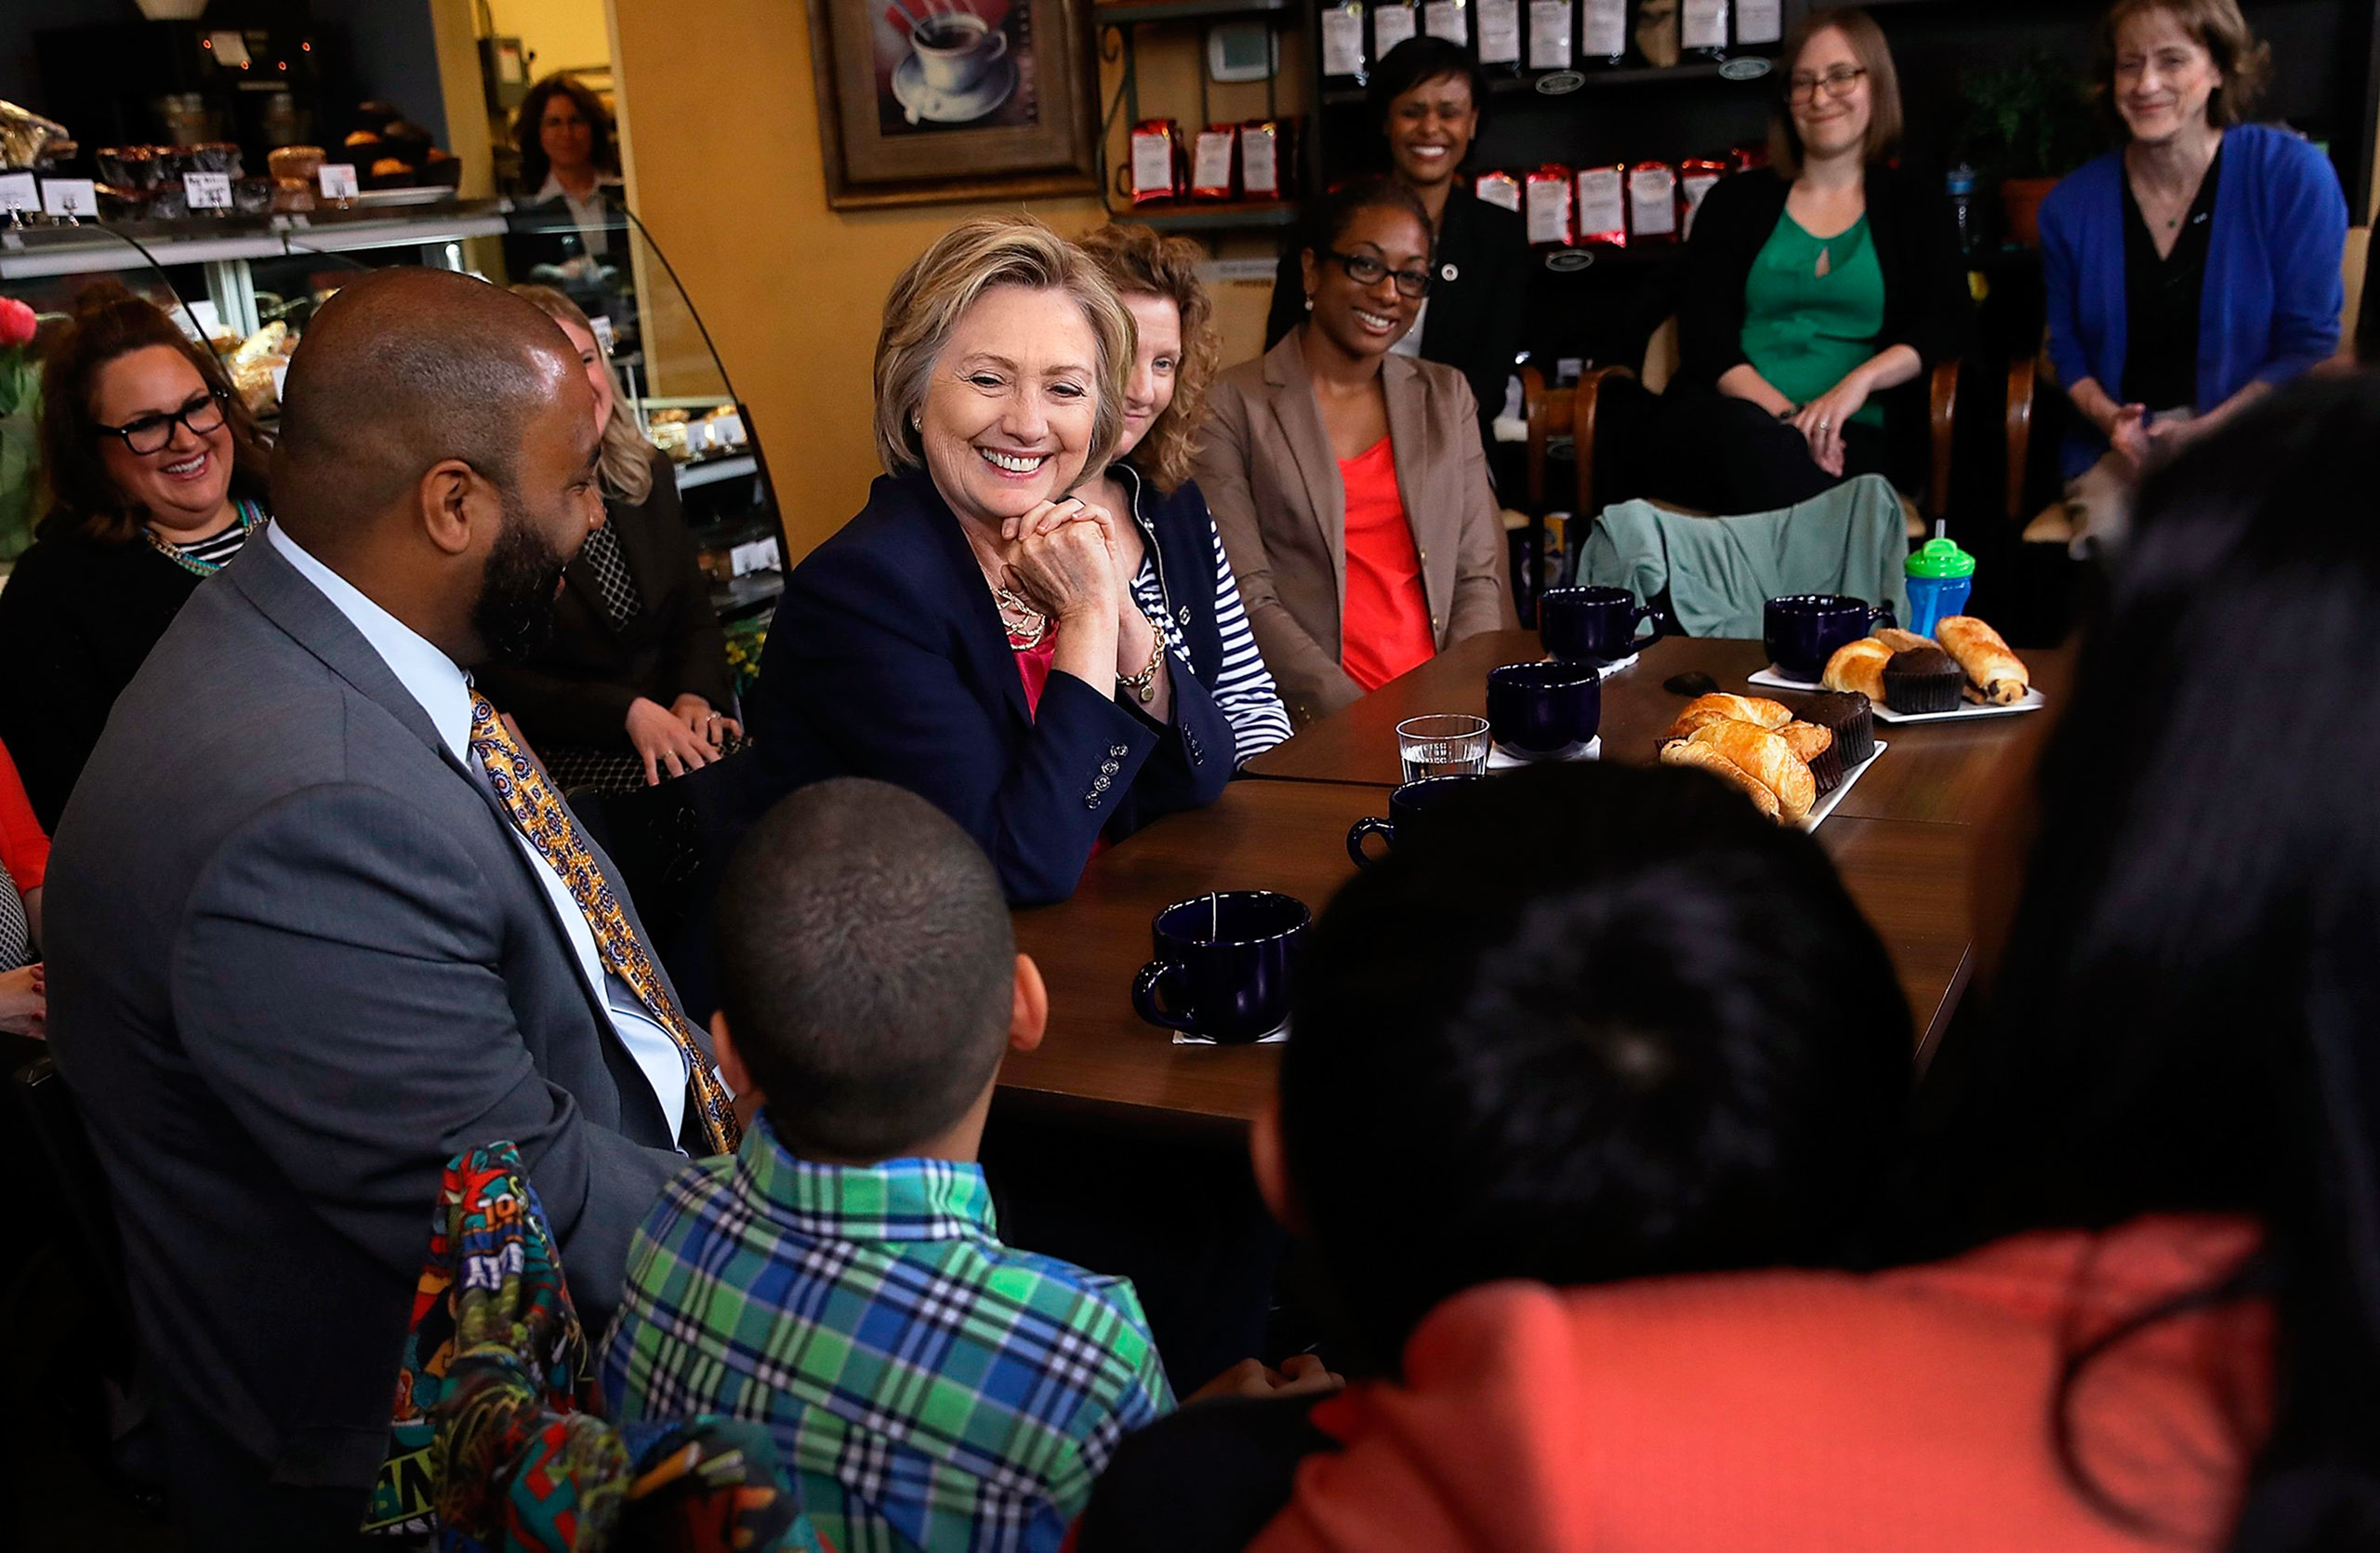 Clinton meets with voters on May 9 at Mug'n Muffin bakery in Aldie, Va.